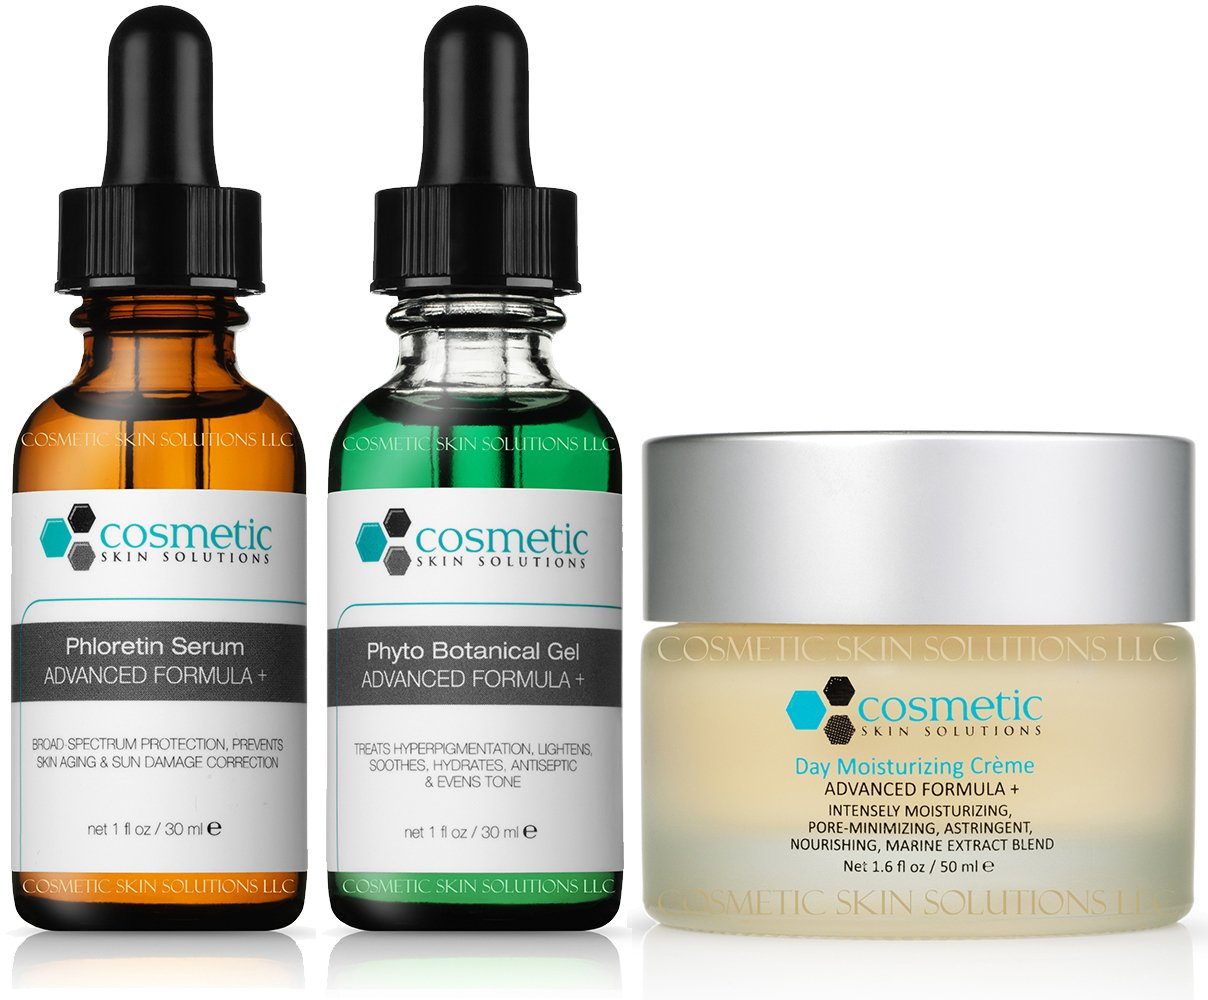 Prevent | Lighten & Hydrate | Moisturizer | 3 Combo Pack - Highest Quality Topical Antioxidants, Includes Phloretin - (1 oz), Phyto Botanical Gel -(1 oz), Moisturizer - Pore-minimizing (50g)